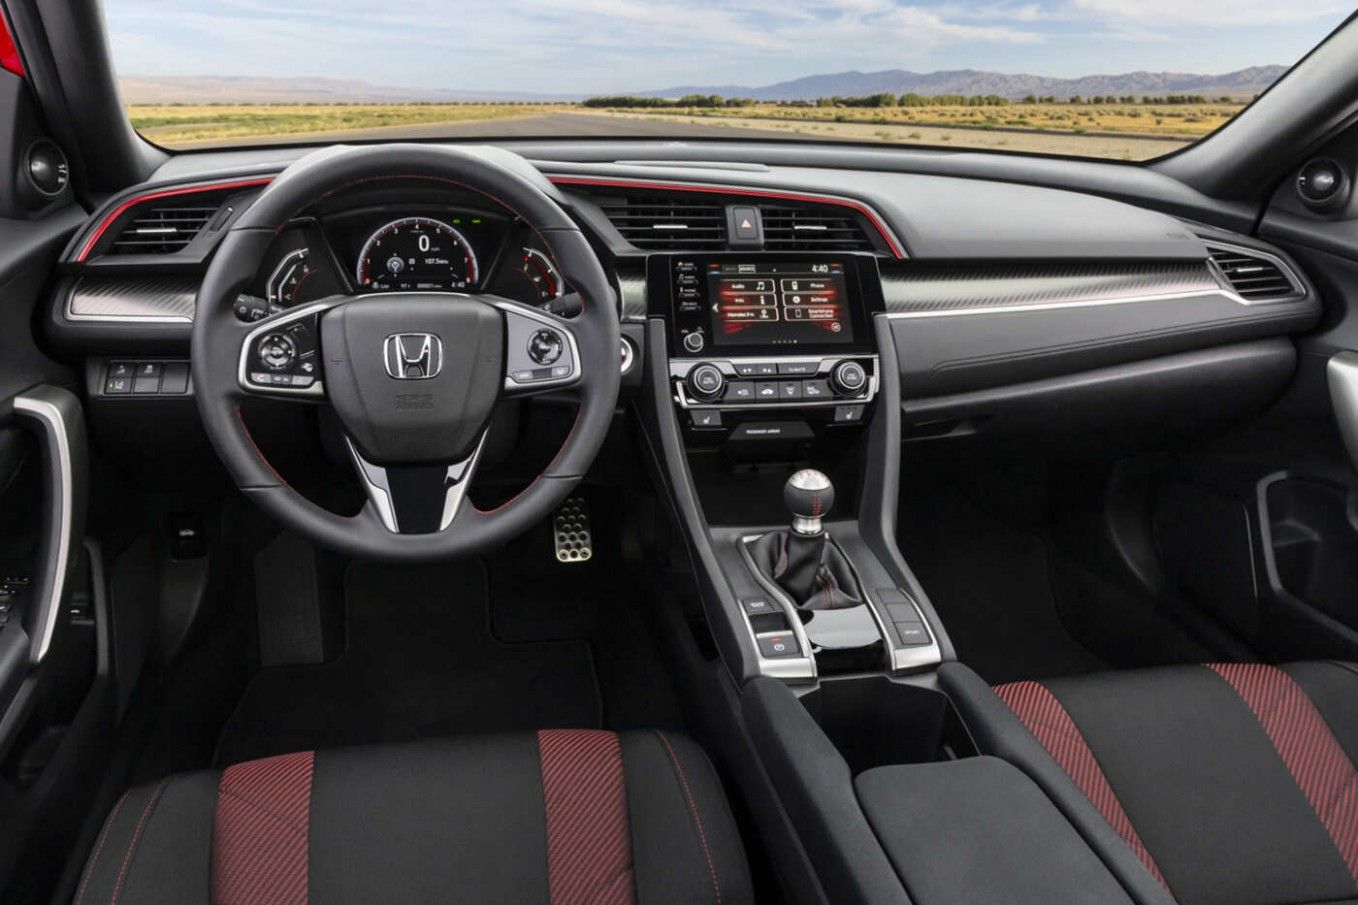 Honda Airbag Recall 2020 New Model And Honda car models